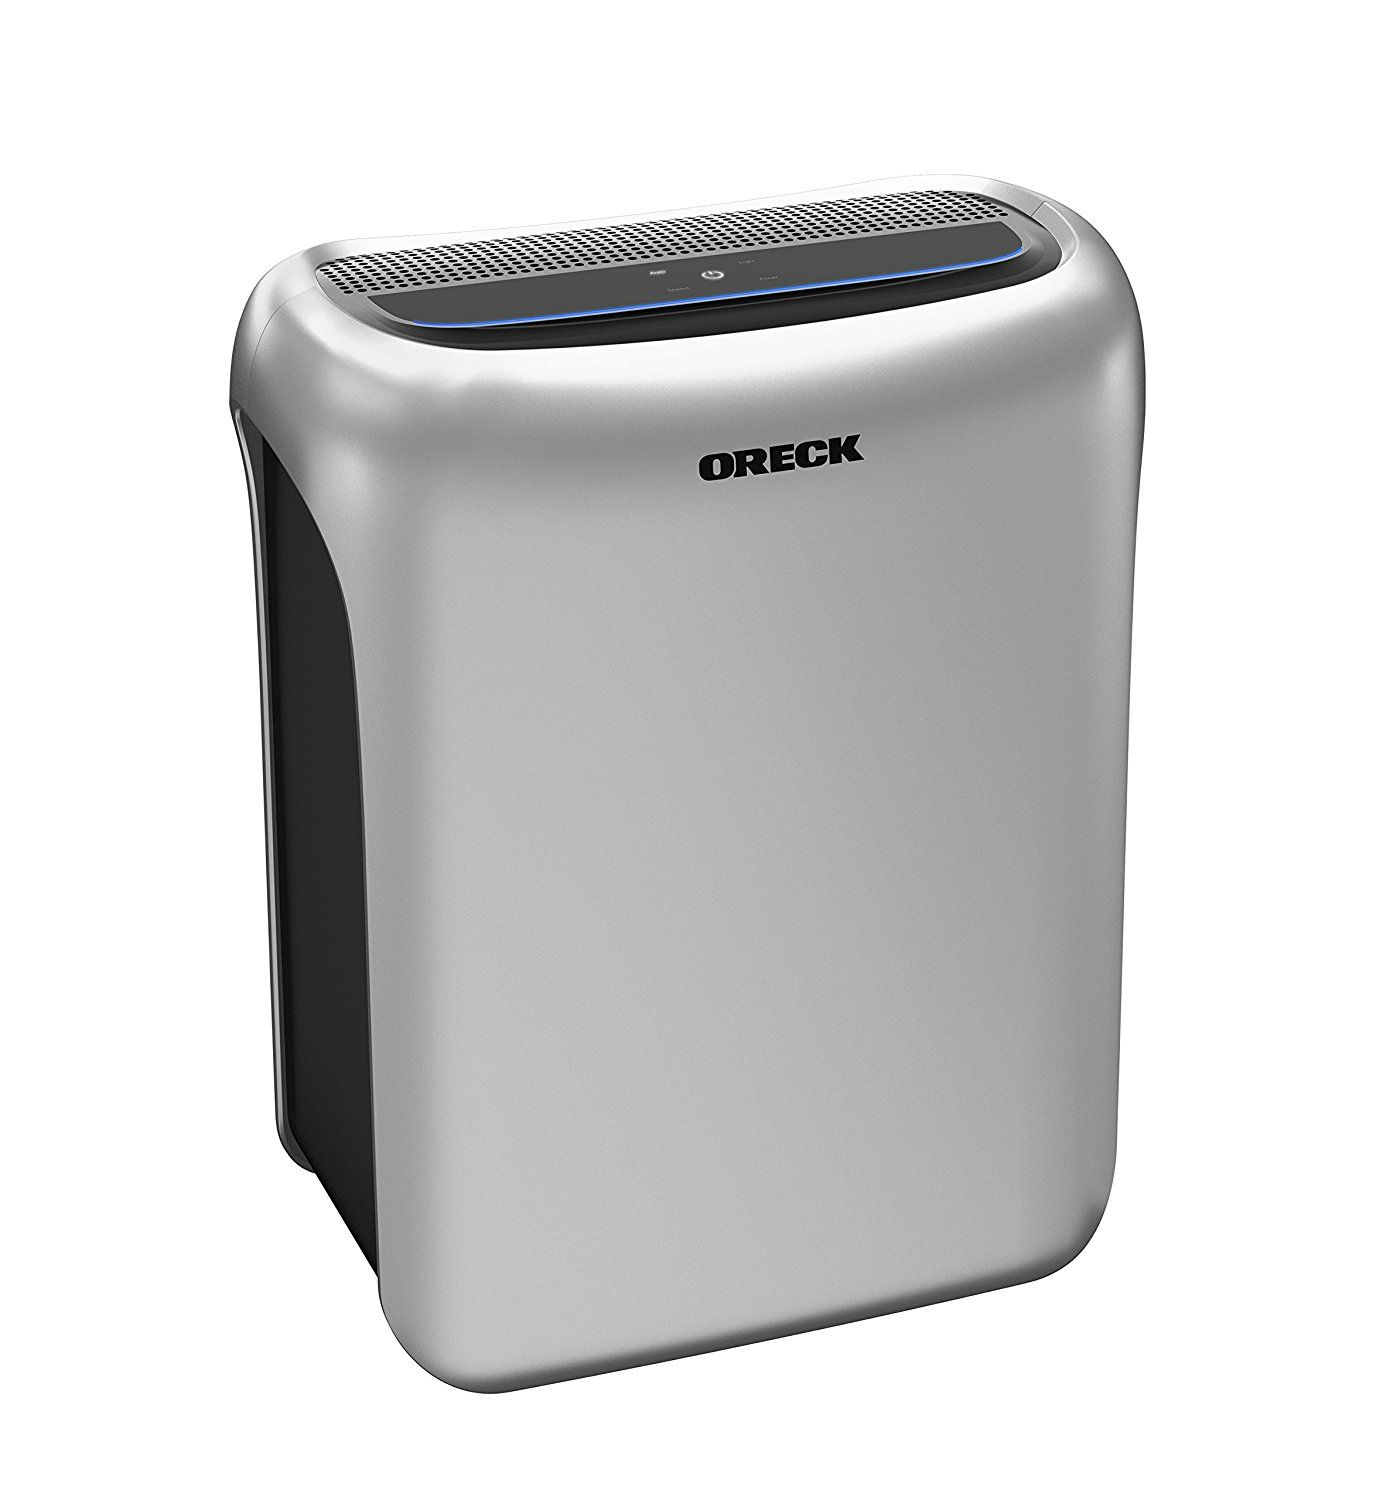 Oreck WK16002 Air Response HEPA Purifier with Odor Control